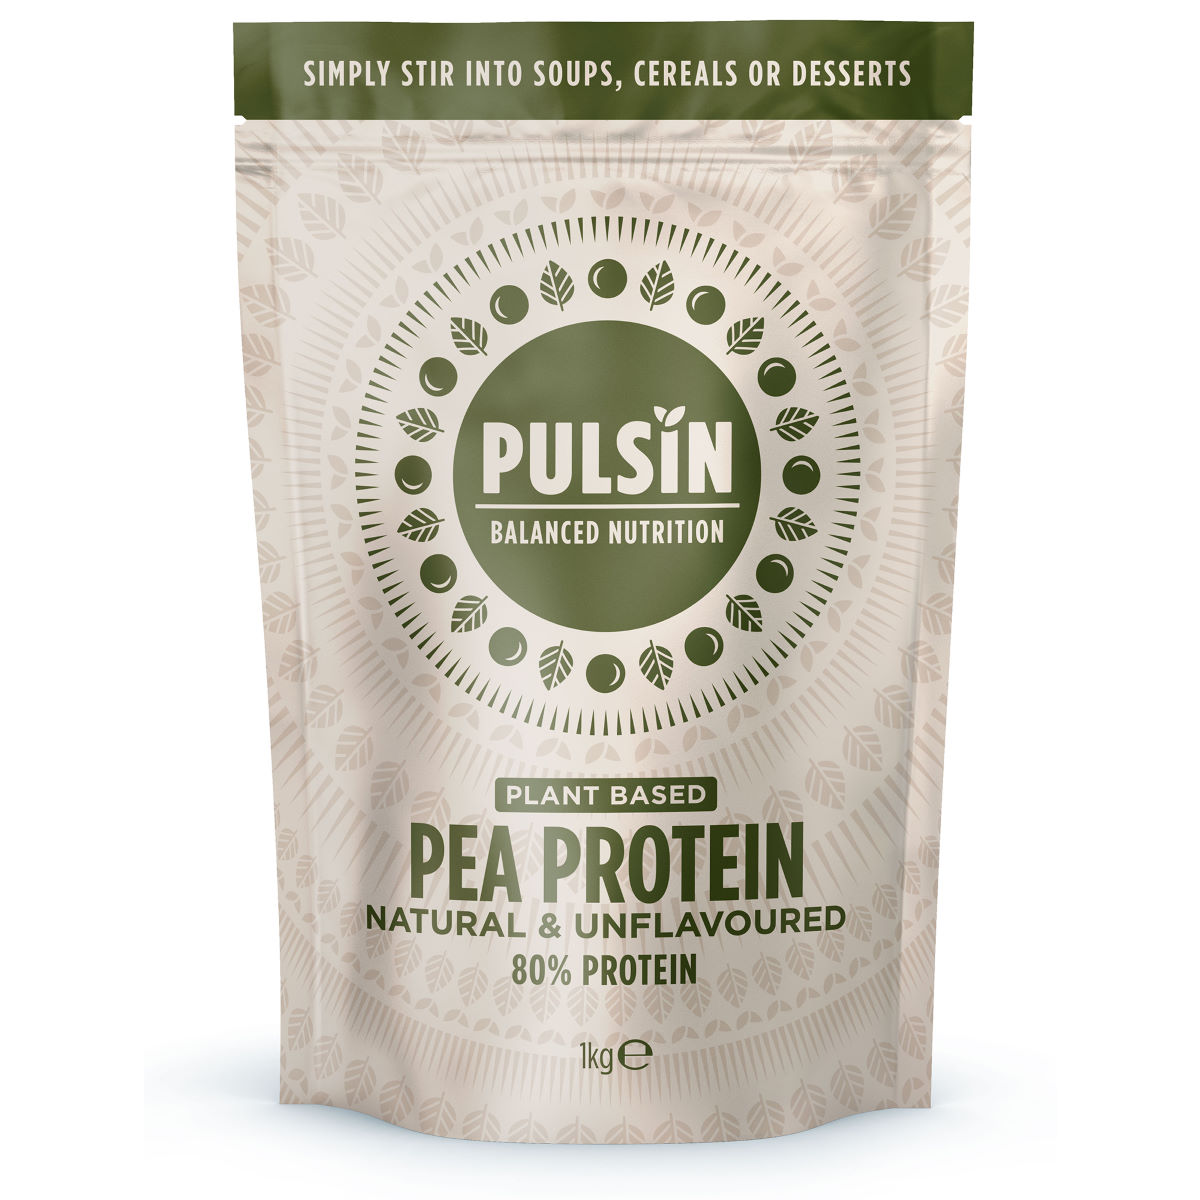 Pulsin Pea Protein Powder (1kg) - 1kg Natural  Powdered Drinks